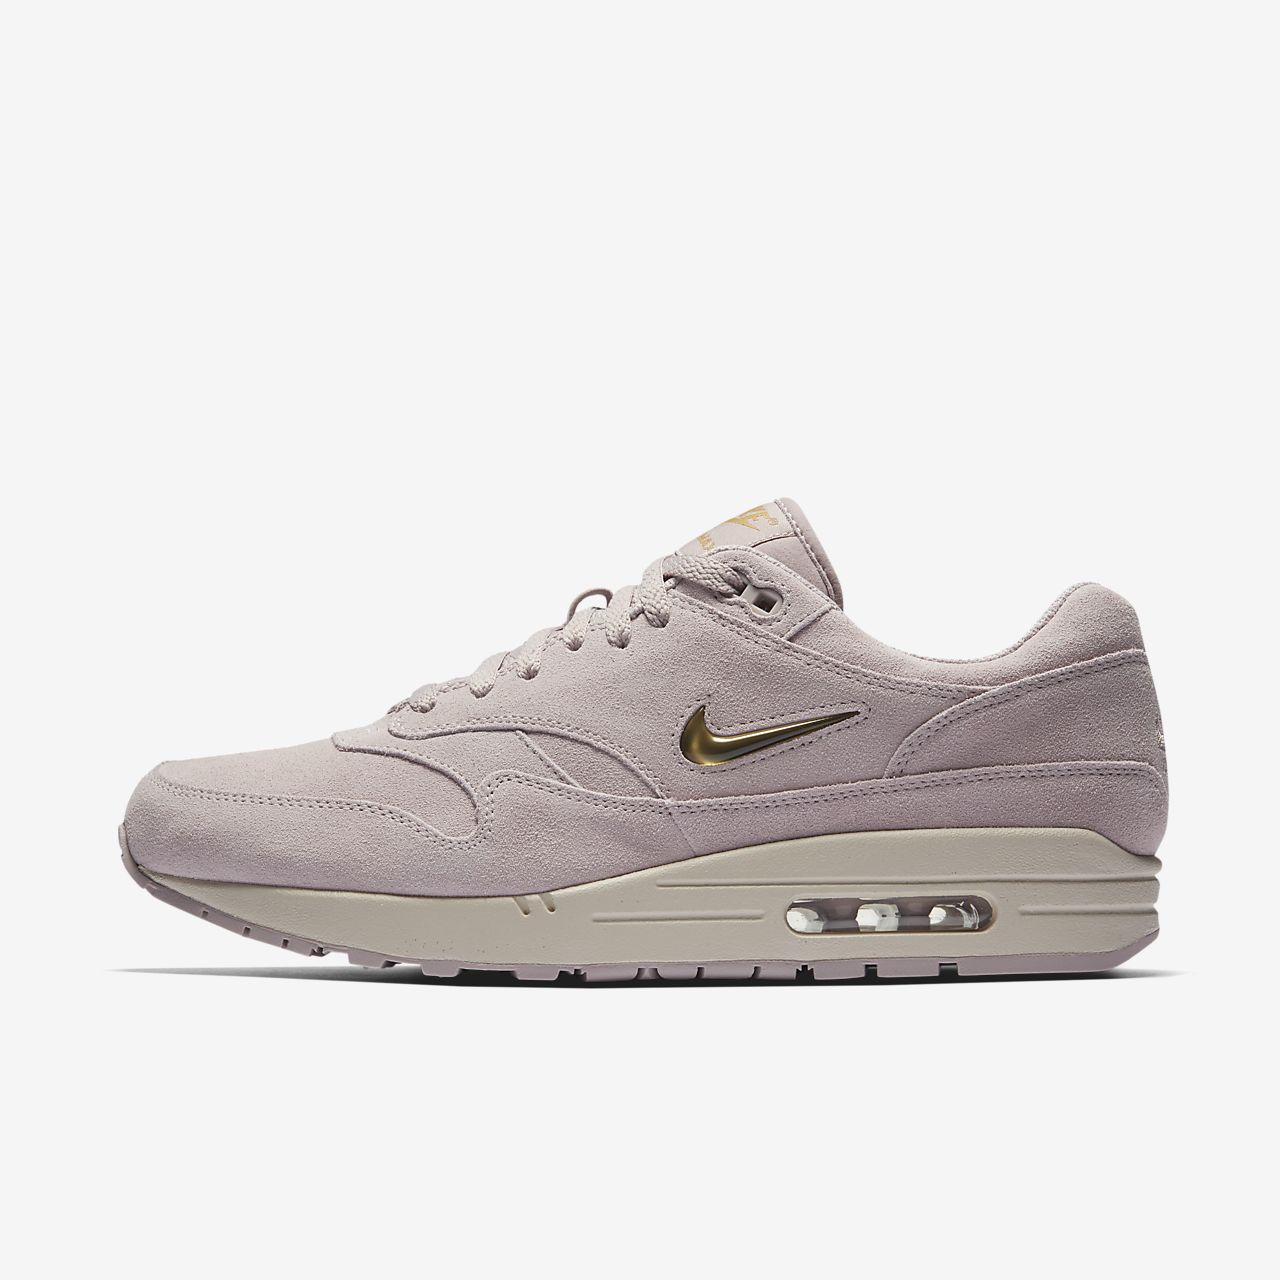 Nike Air Max 1 Ultra Flyknit 10 Olive 856958 203 NWT